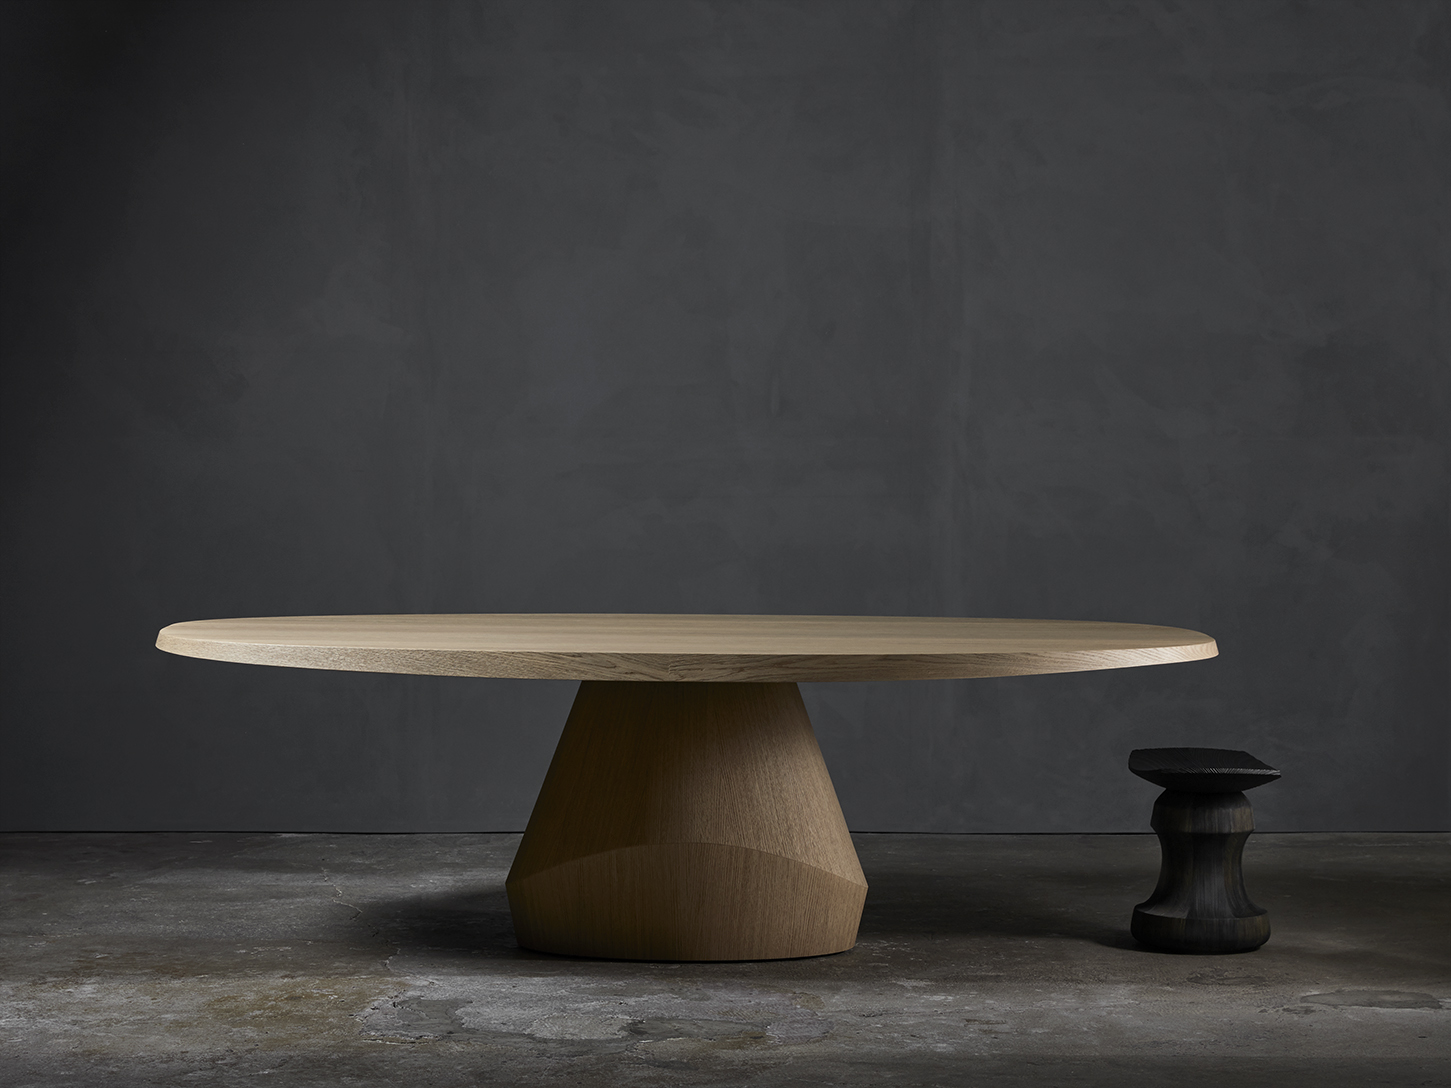 ROI-stool-christophe-delcourt-YAB-dining_table-Yabu_Pushelberg4-Collection_Particuliere